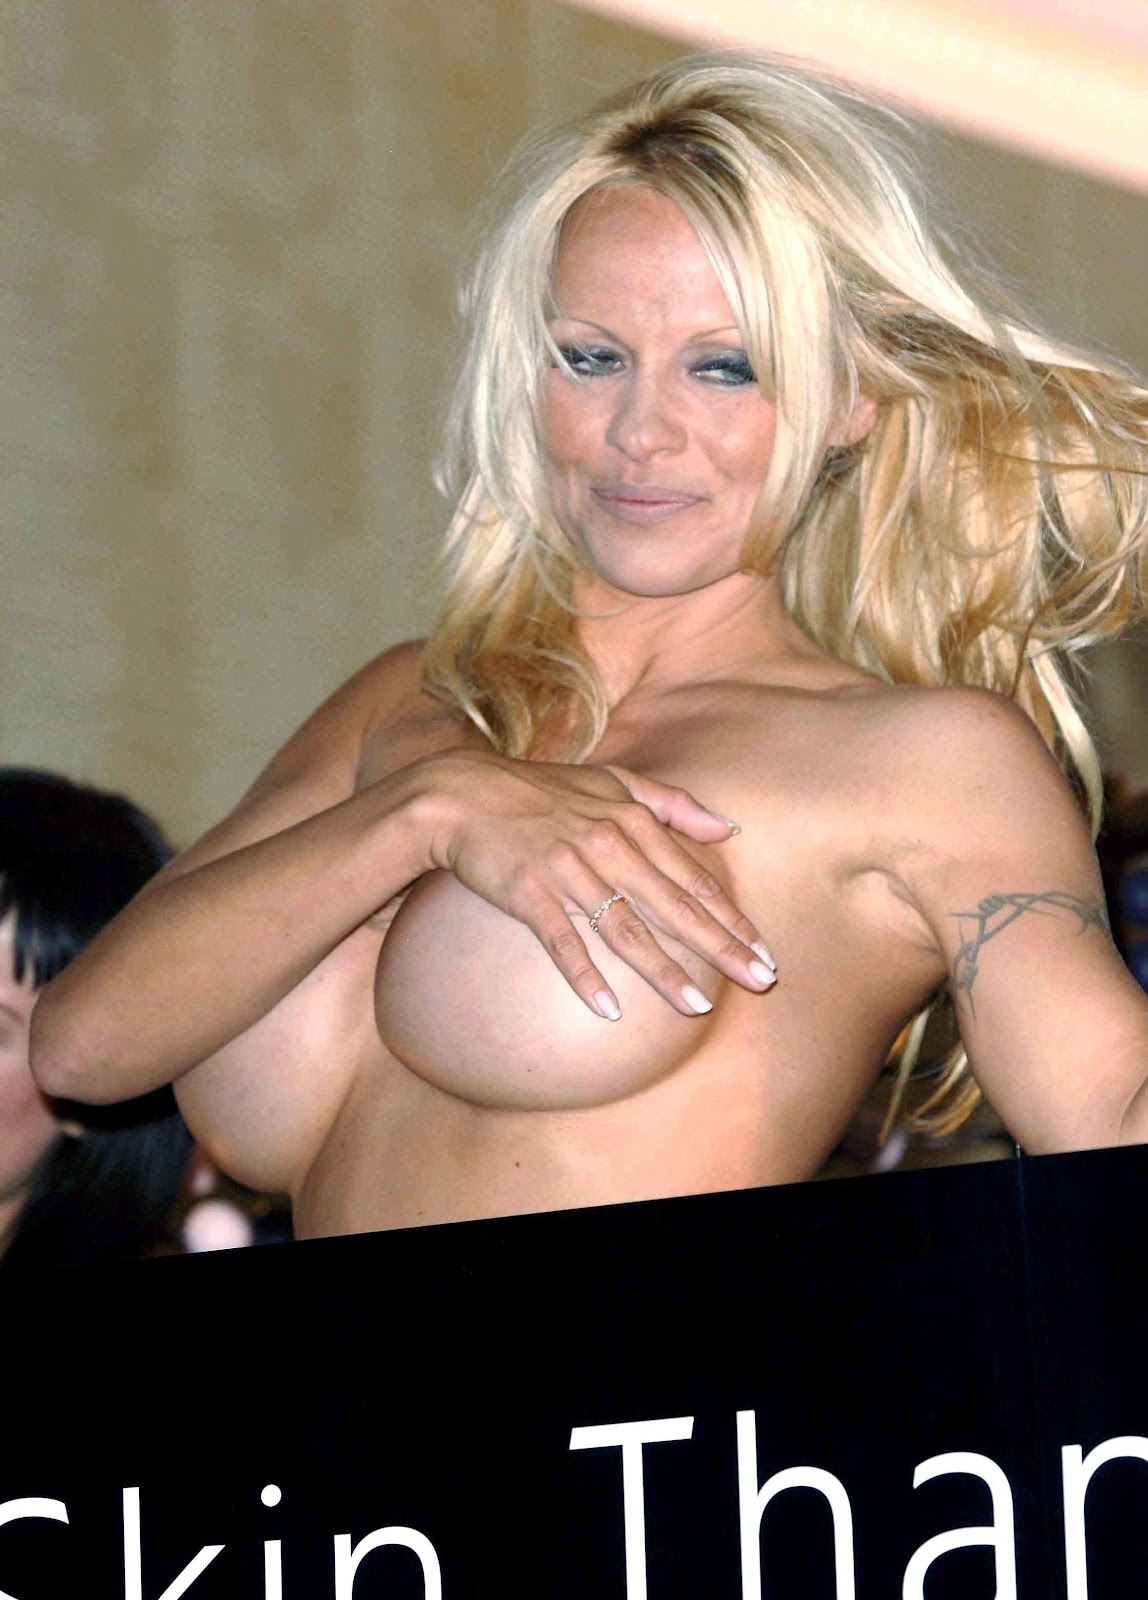 Pamela Anderson Topless Picture News Of The World Scandal